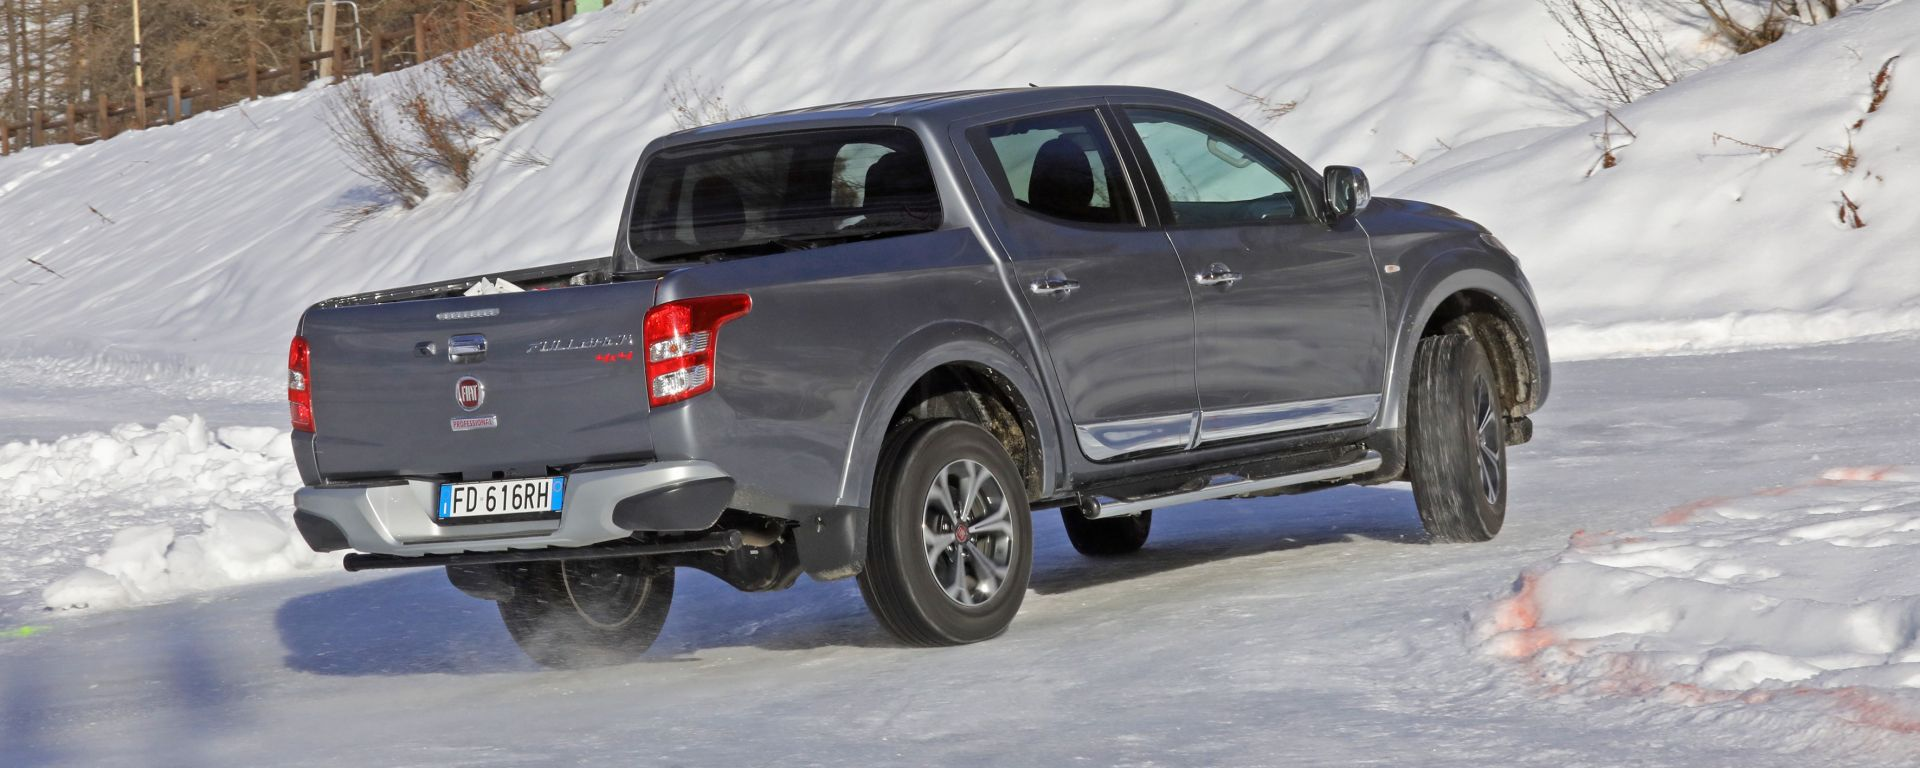 Fiat Fullback: drifting sul ghiaccio [Video]